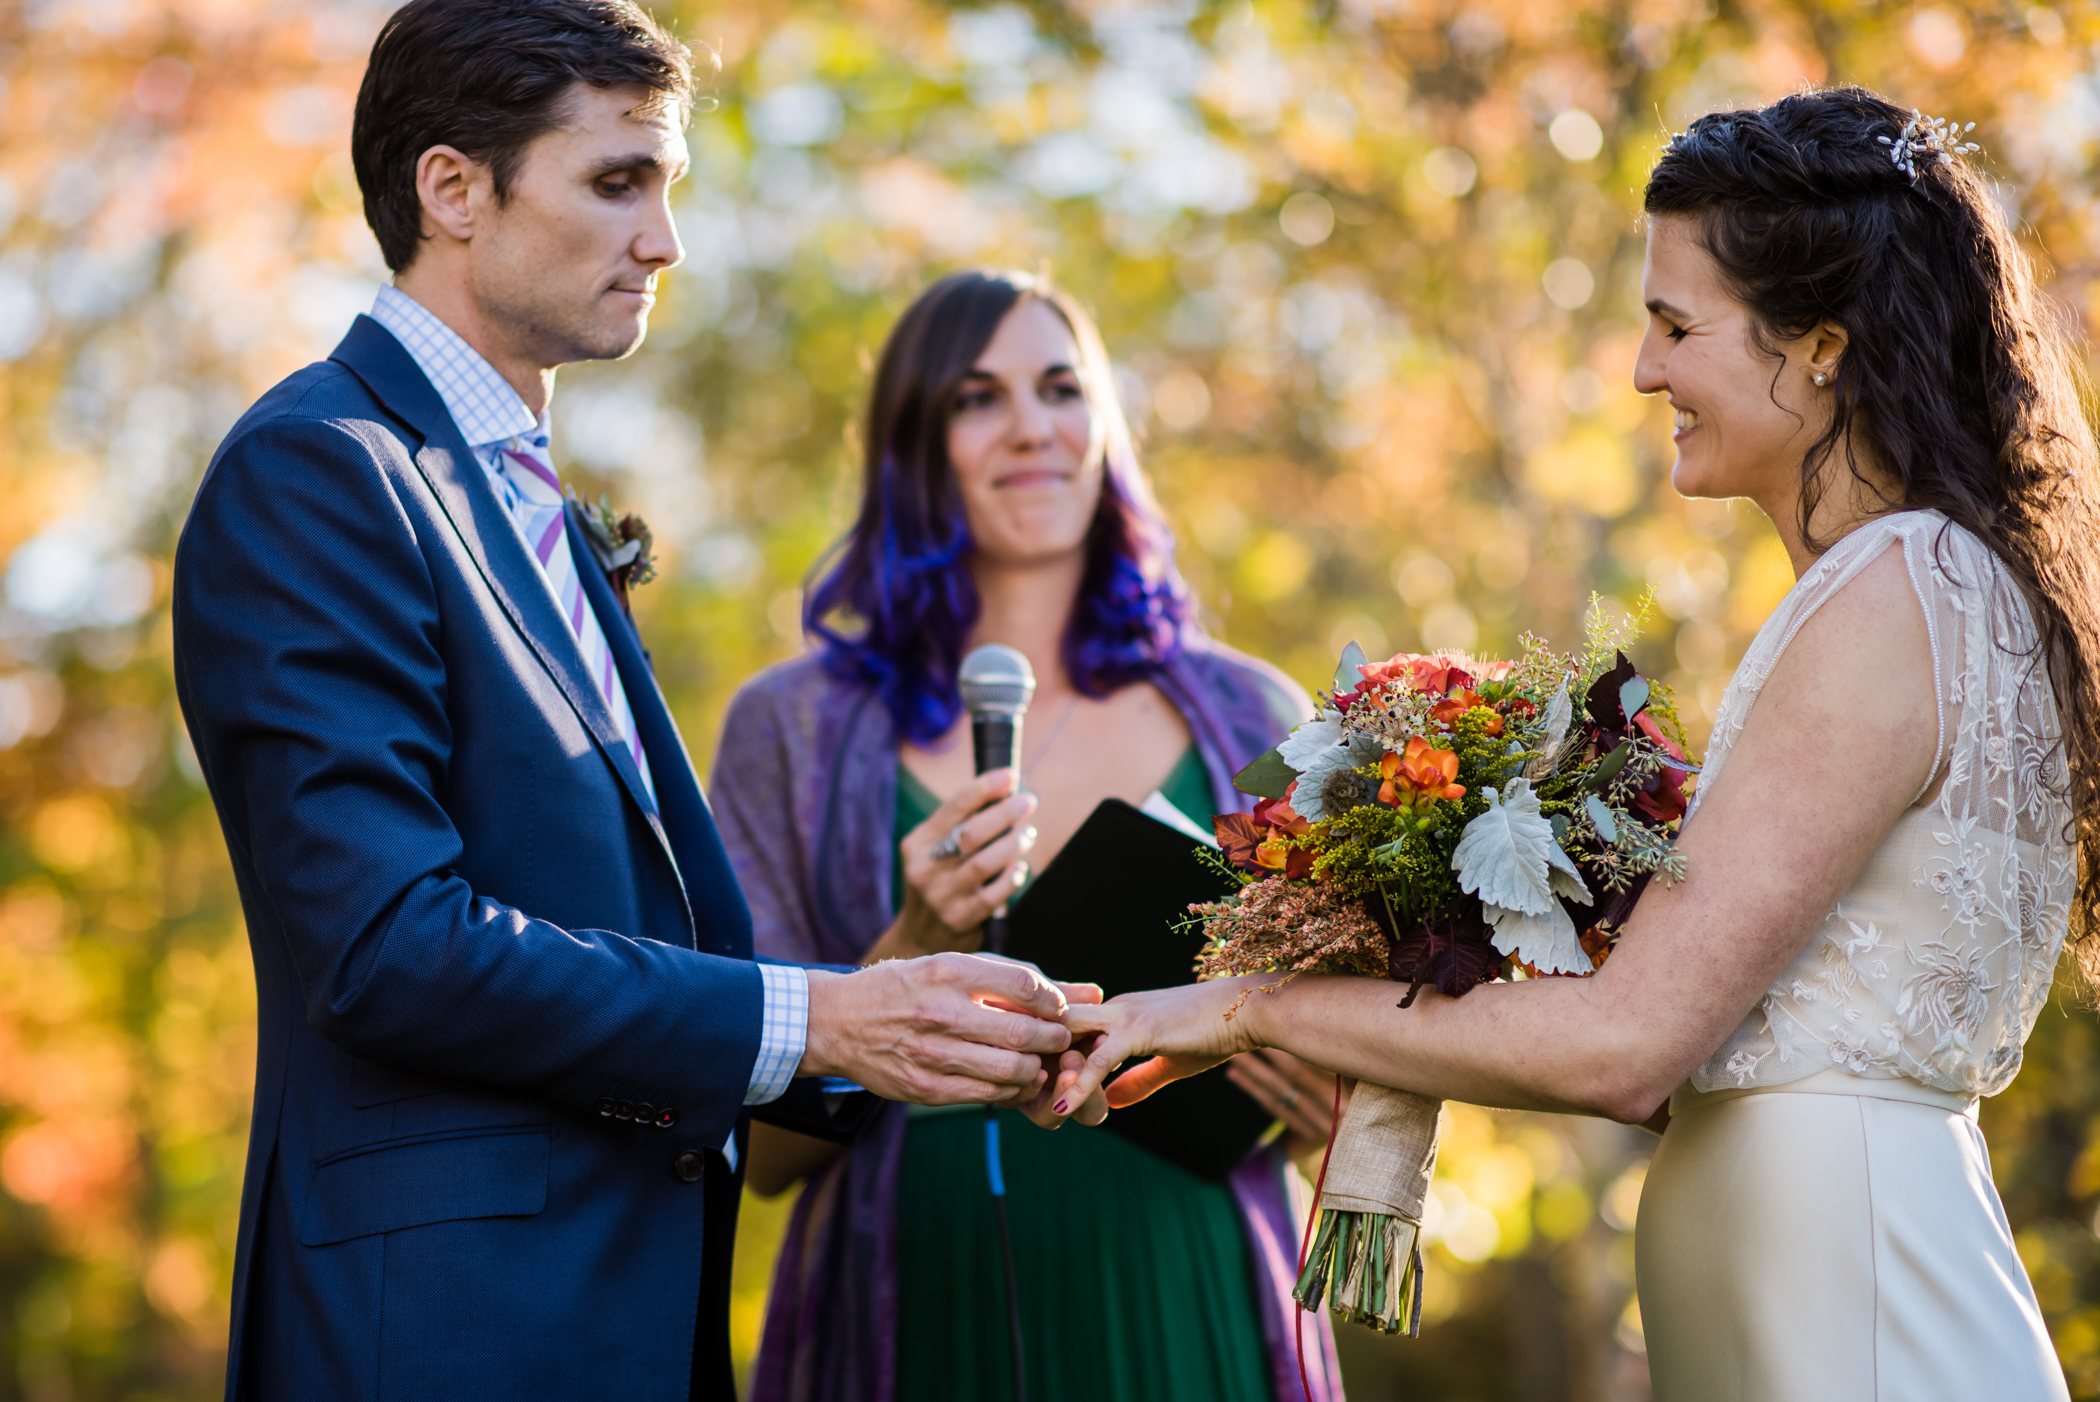 Stefy Hilmer Photography -wedding ring exchange at ceremony.jpg